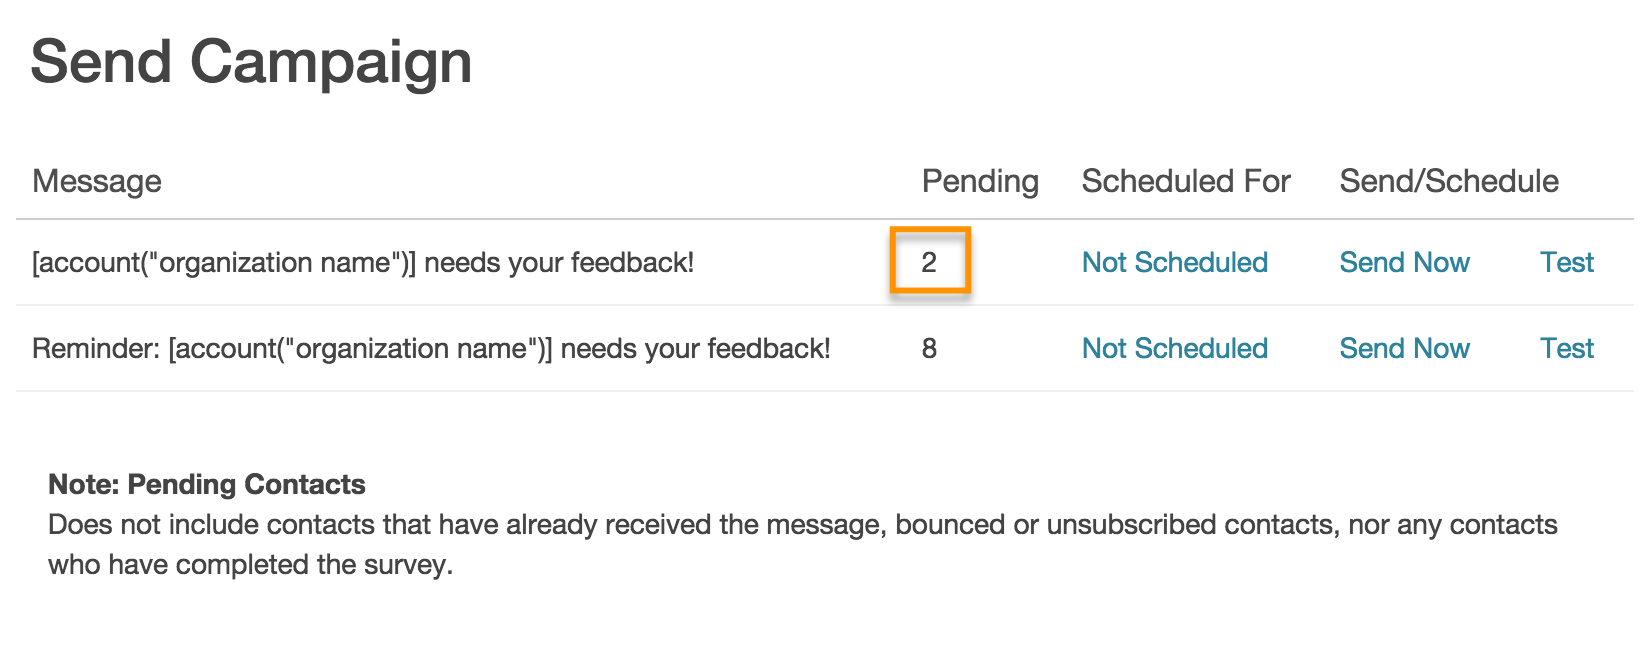 Send An Email Campaign Invite To A Newly Added Contact Surveygizmo